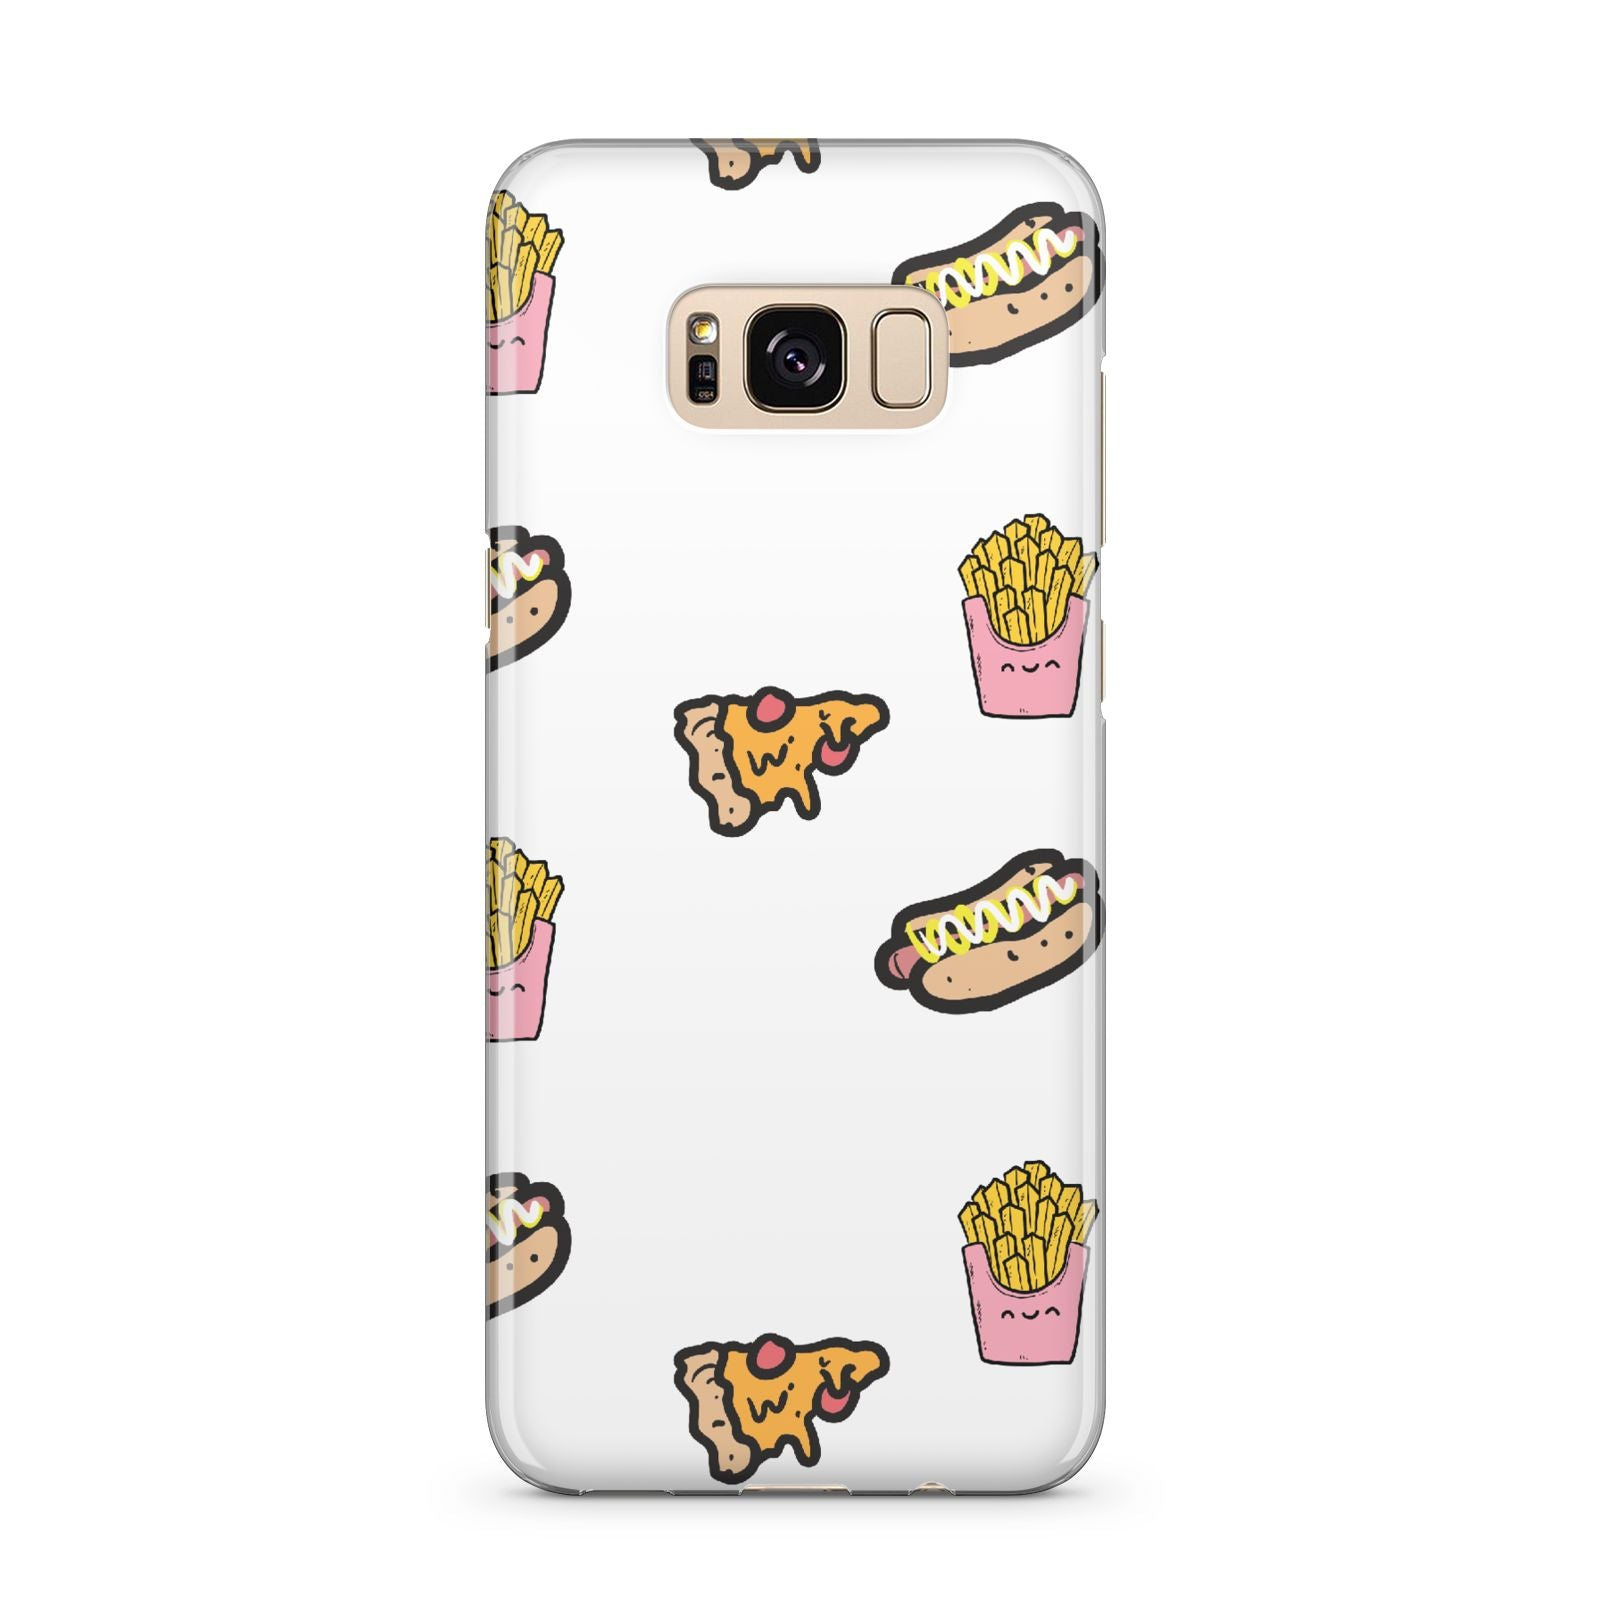 Fries Pizza Hot Dog Samsung Galaxy S8 Plus Case